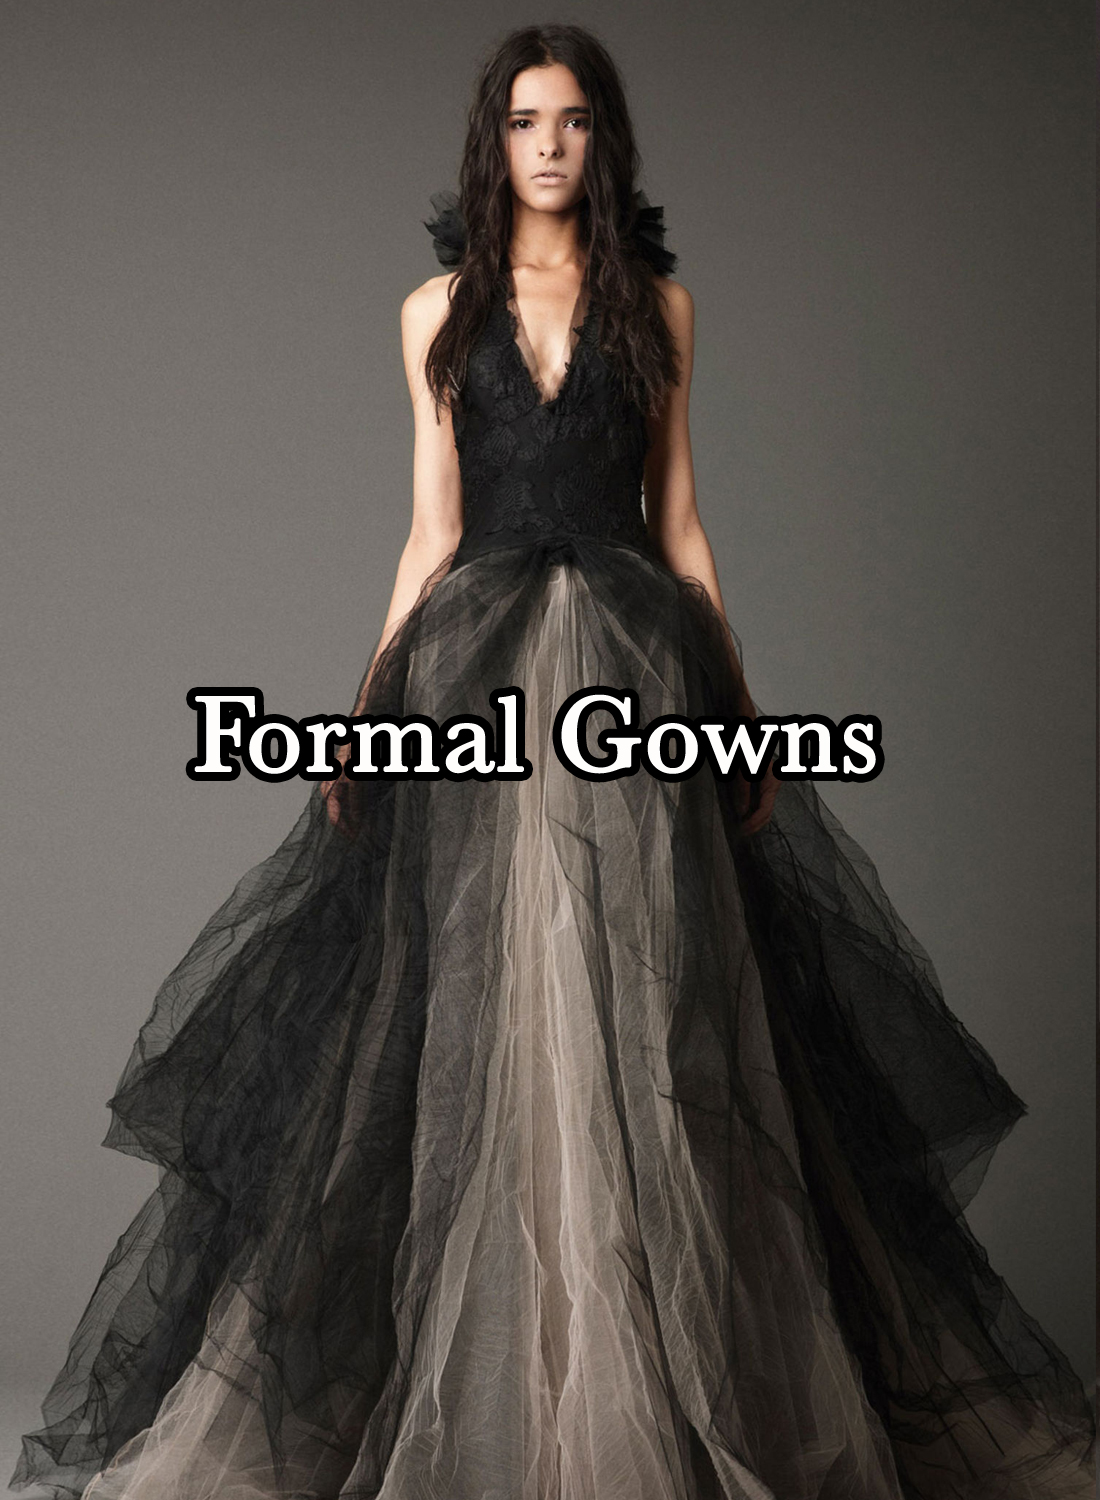 Formal-Gowns-Landing-Page.jpg